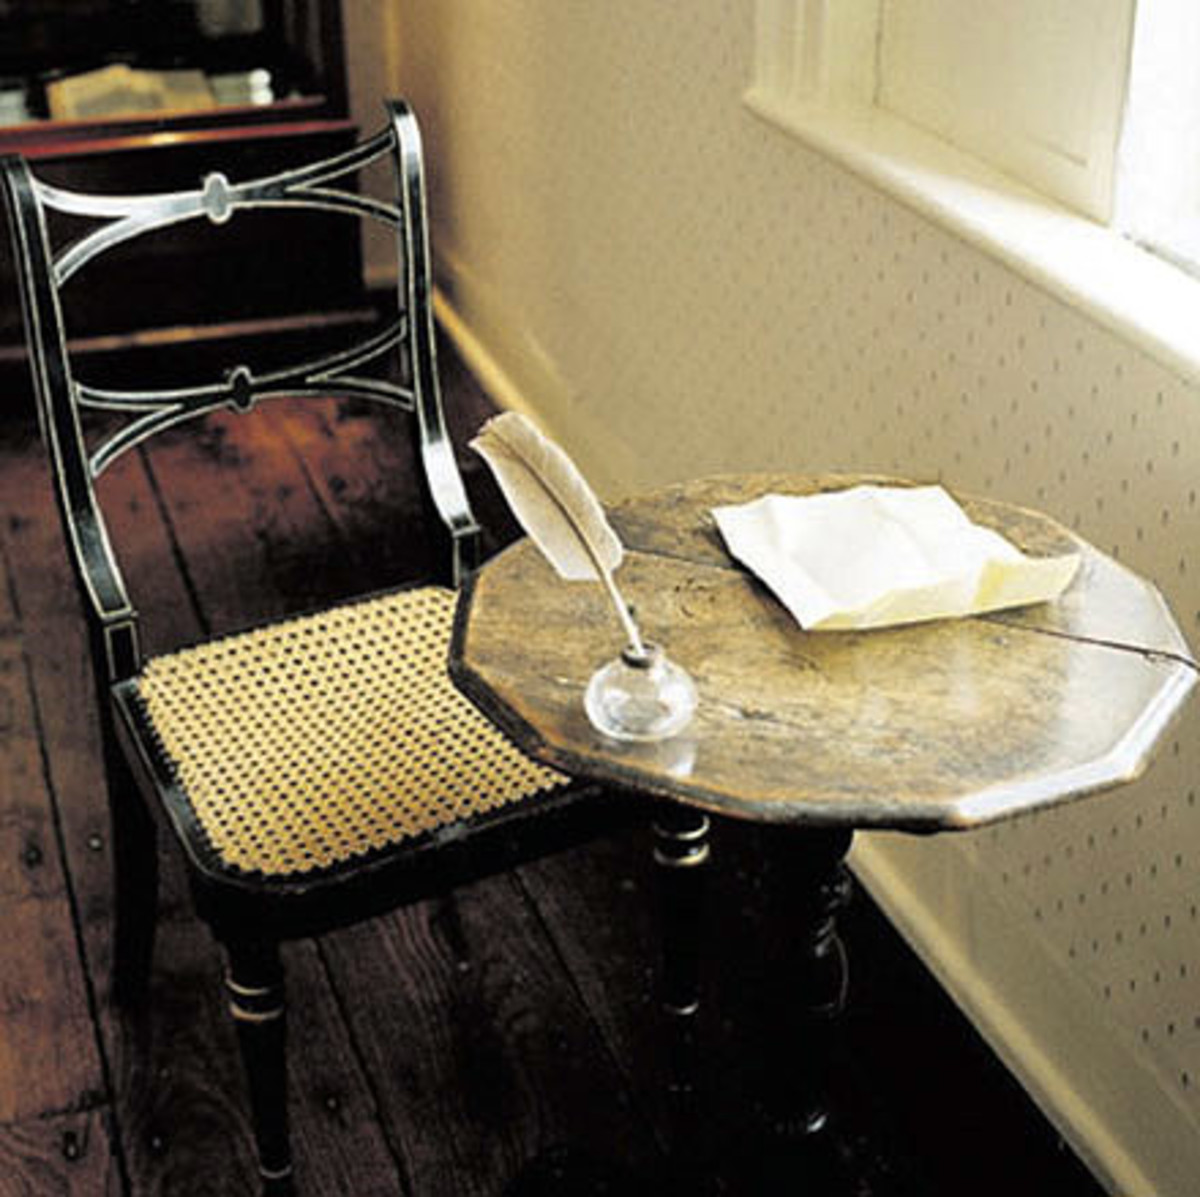 Jane Austen's writing table